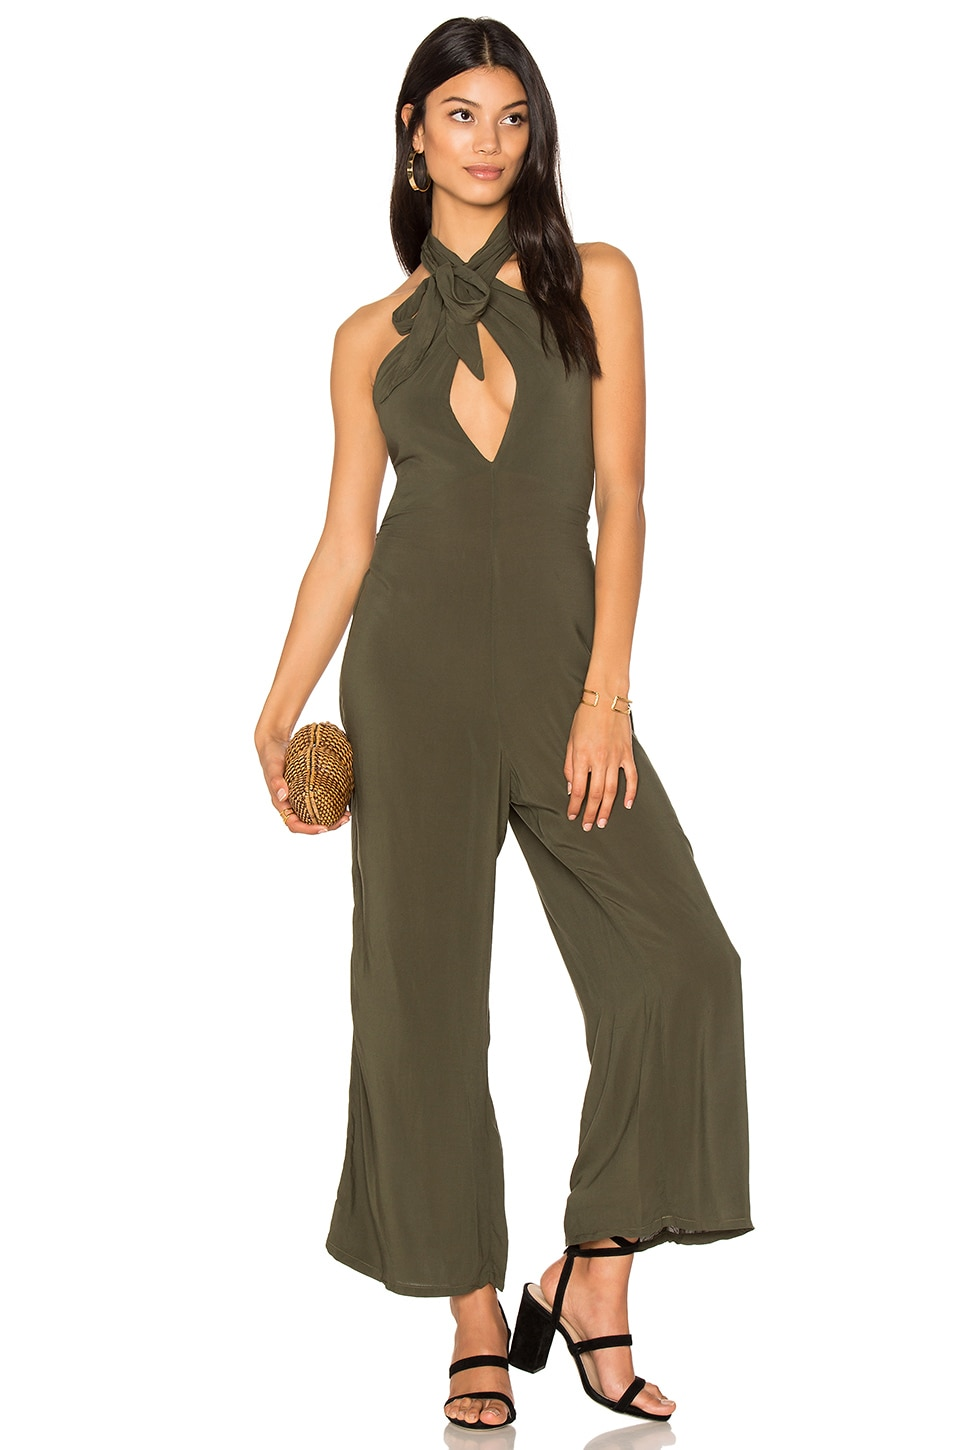 Blue Life Electra Tie Front Jumpsuit in Olive Solid